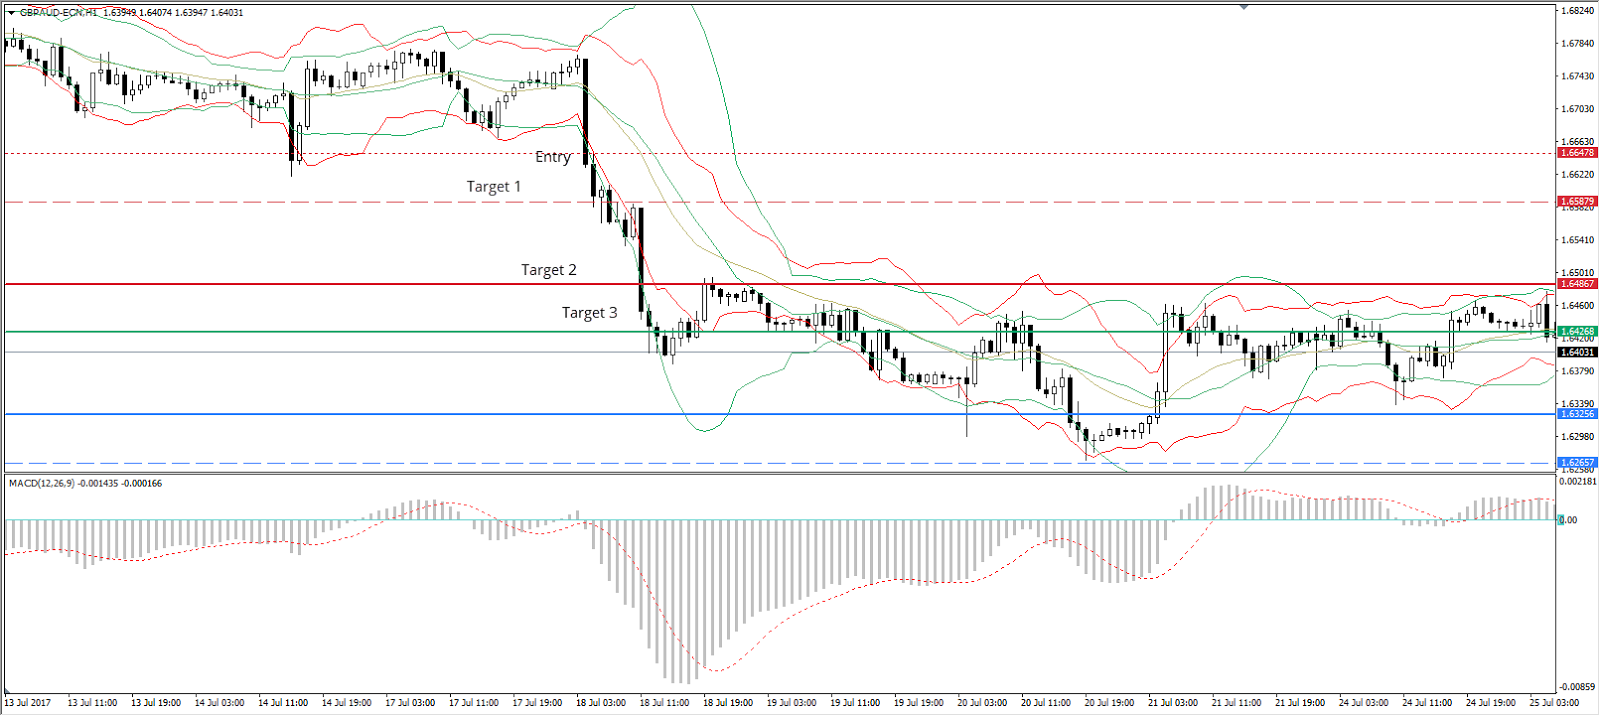 Admiral Pivot indicator. For M30-H1 chart, we use daily pivots, for H4 and D1 charts, Weekly pivots